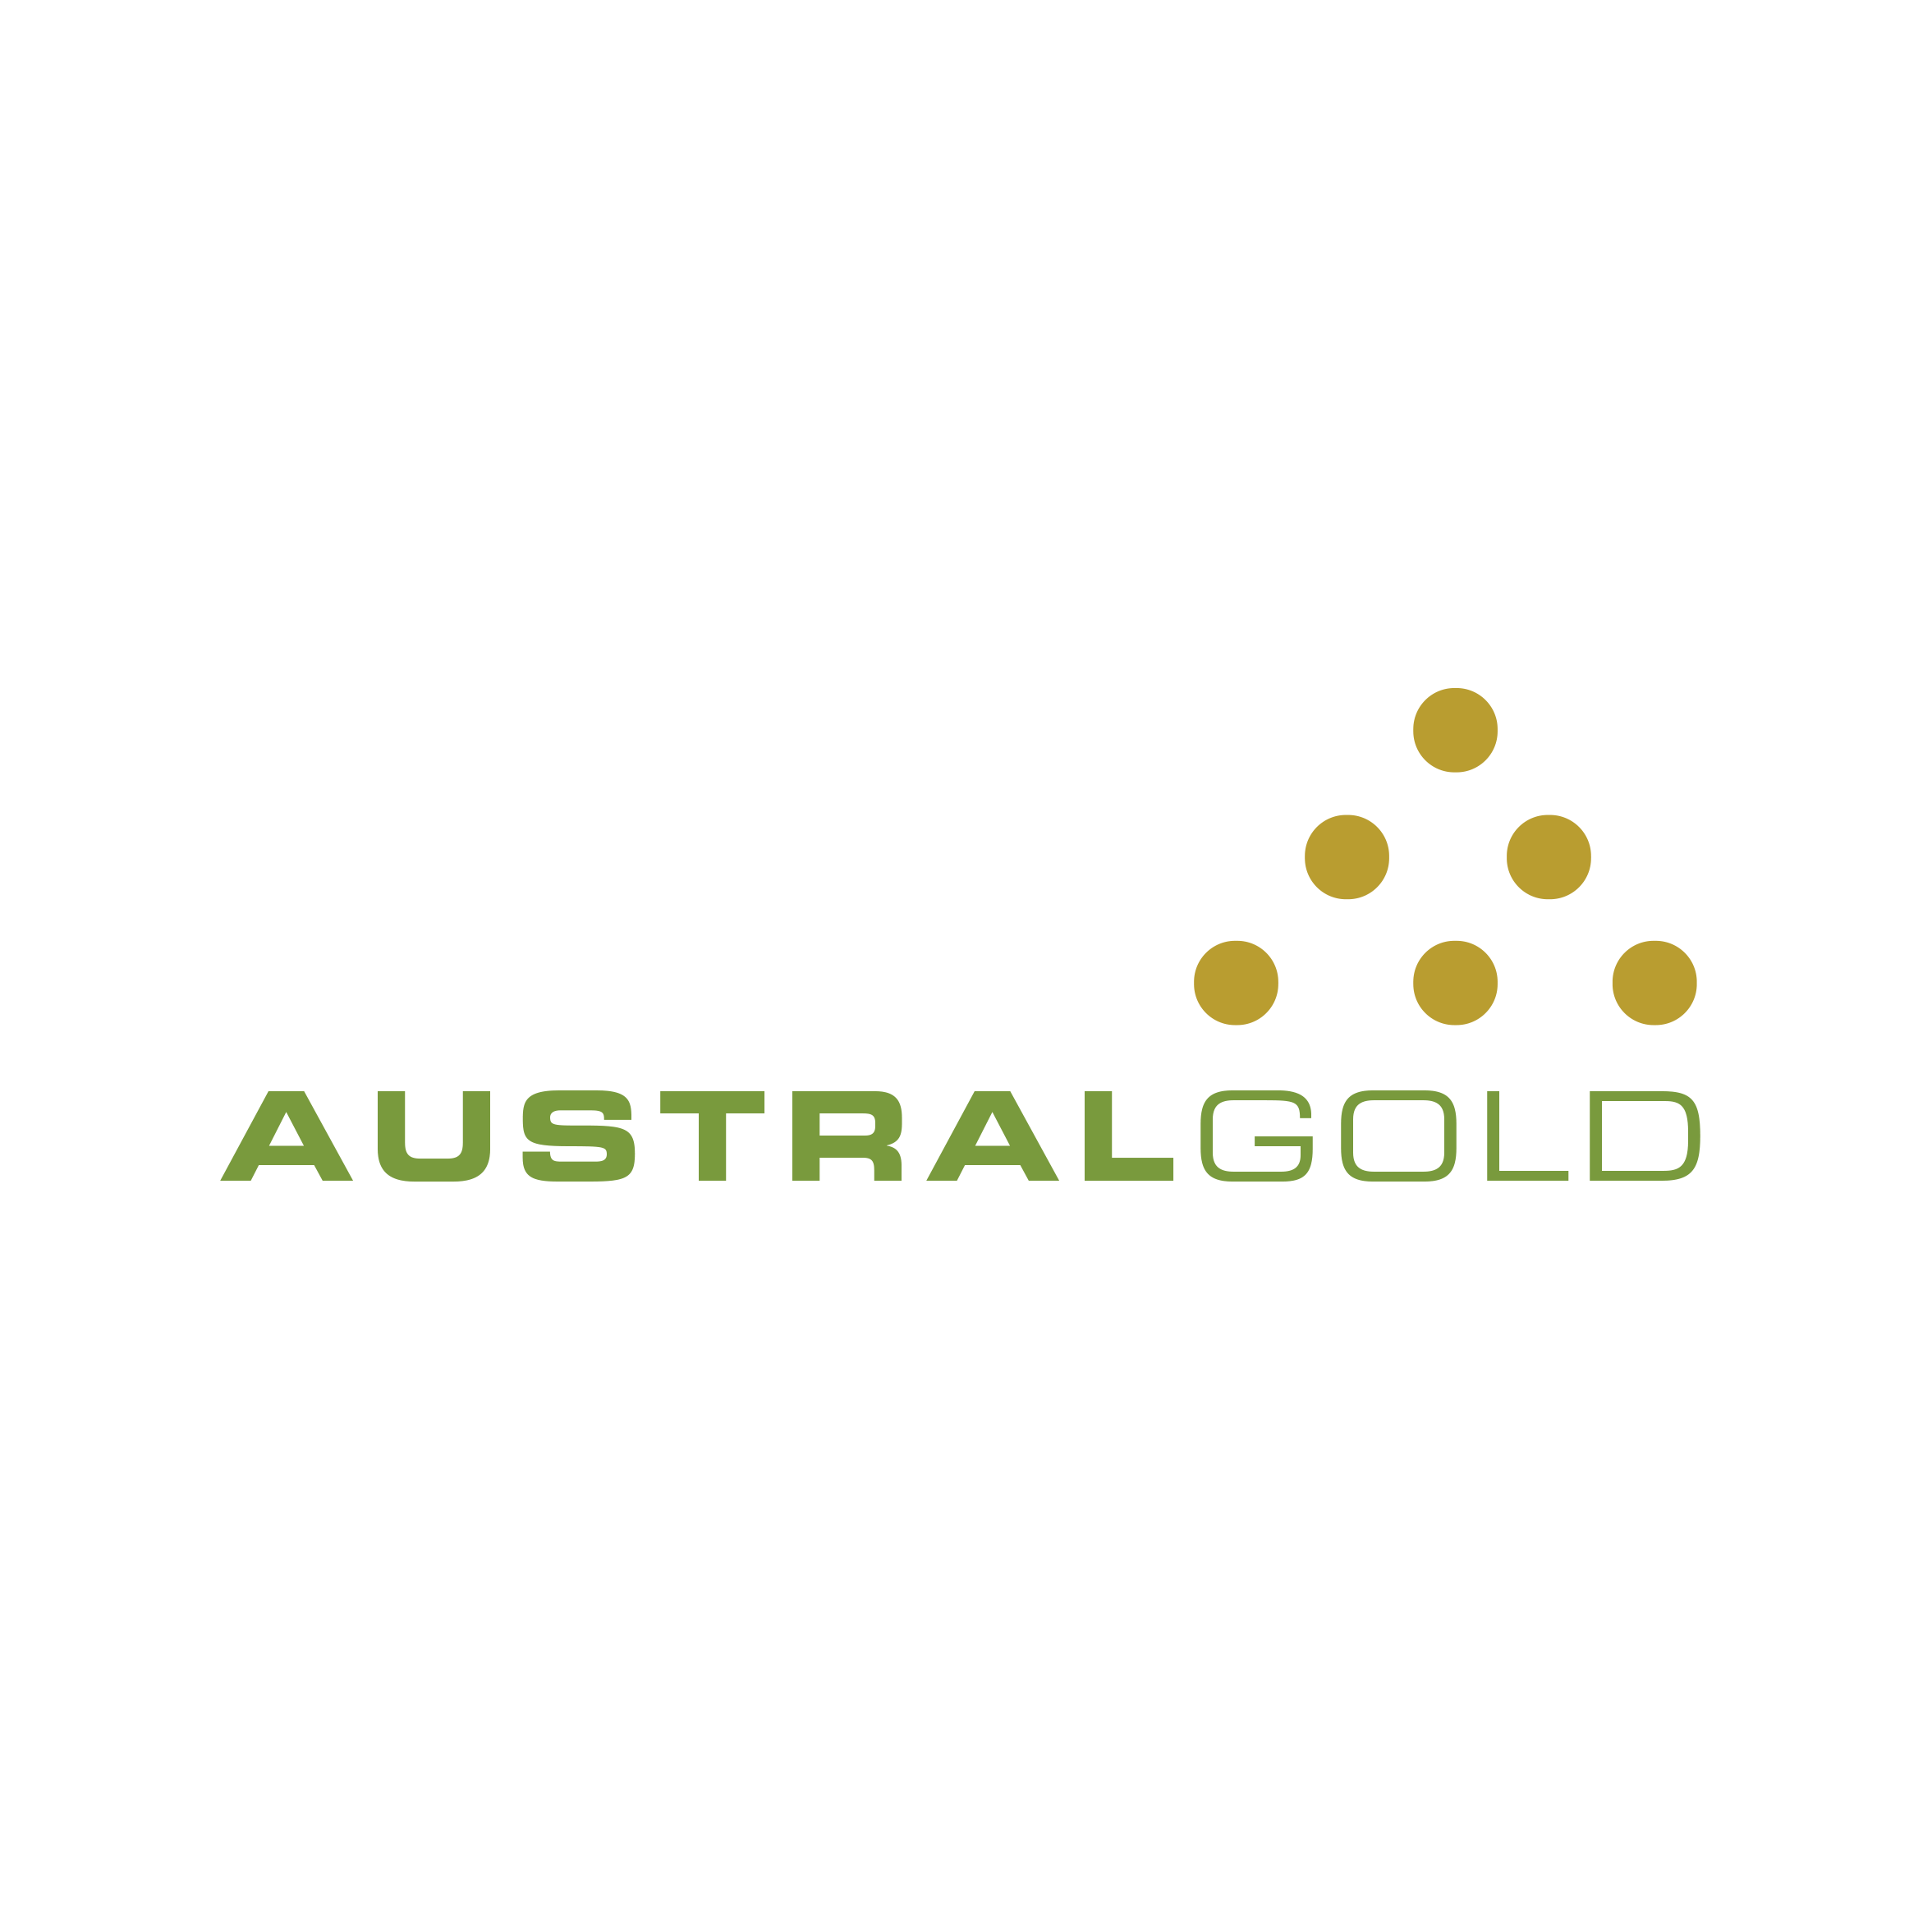 AUSTRAL GOLD LIMITED